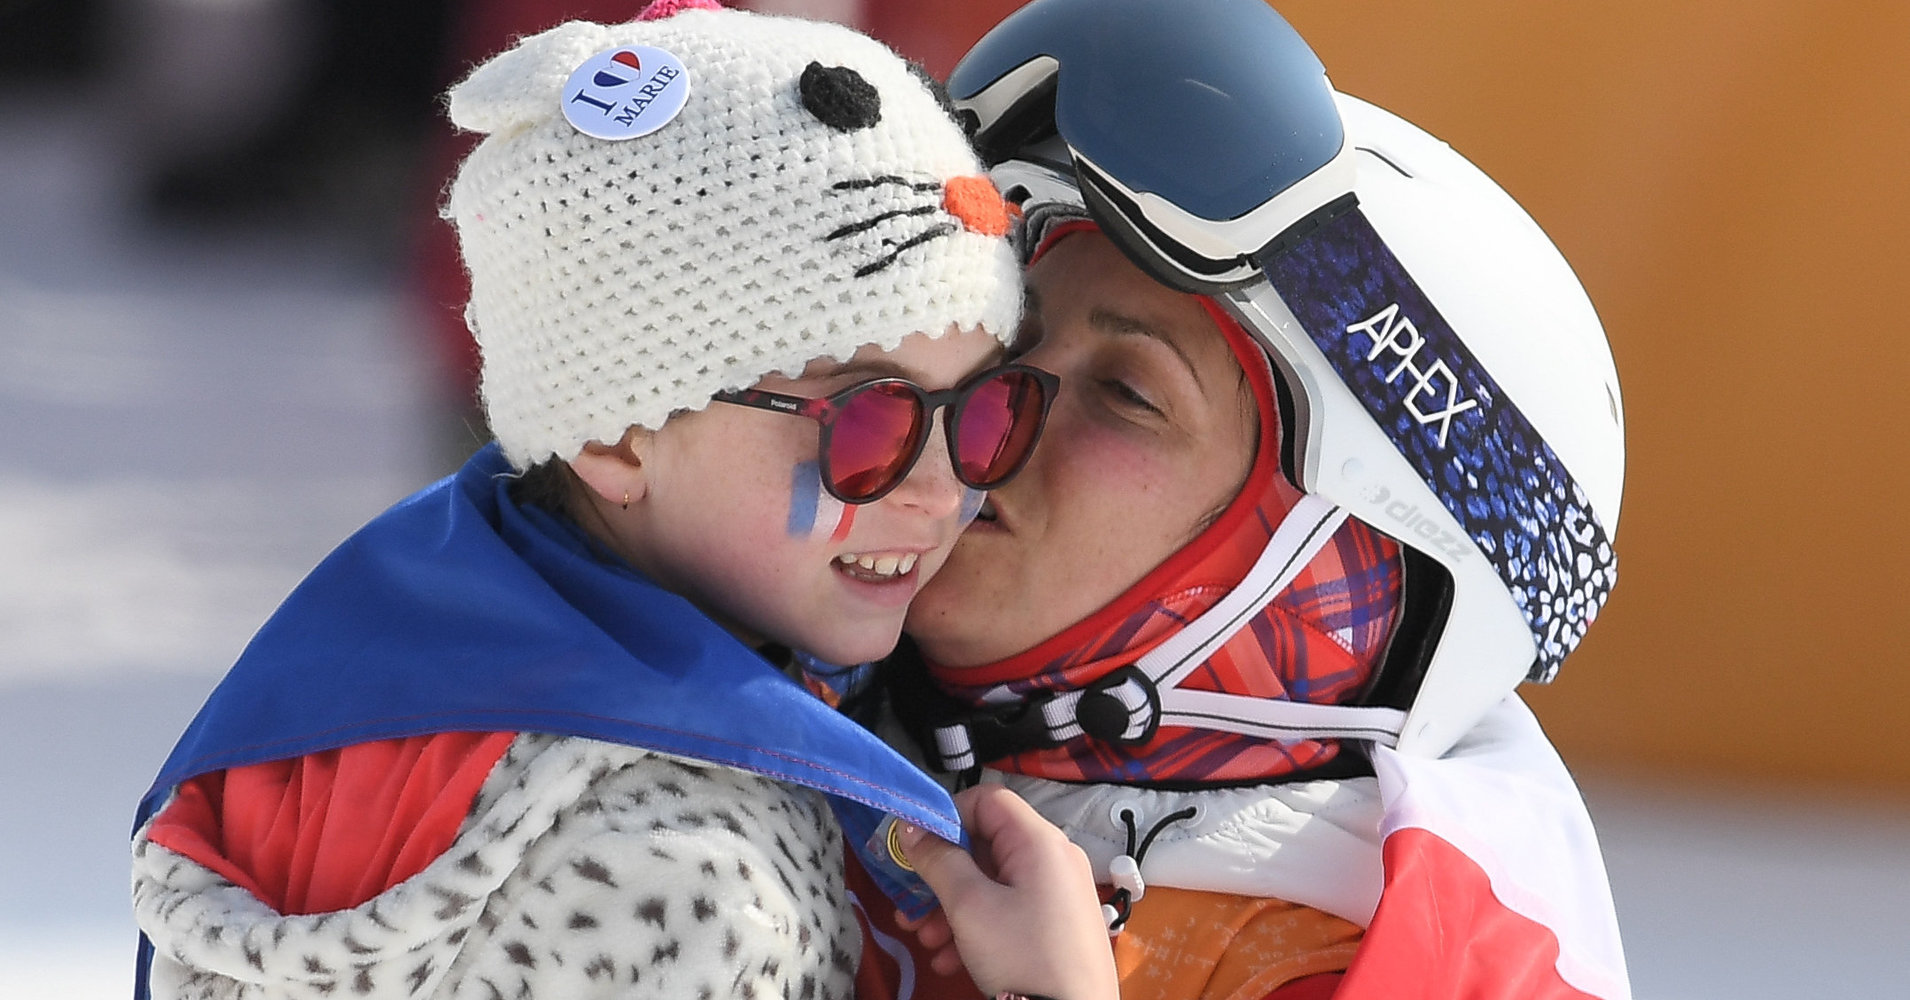 12 Sweet Parenting Moments From The Olympics